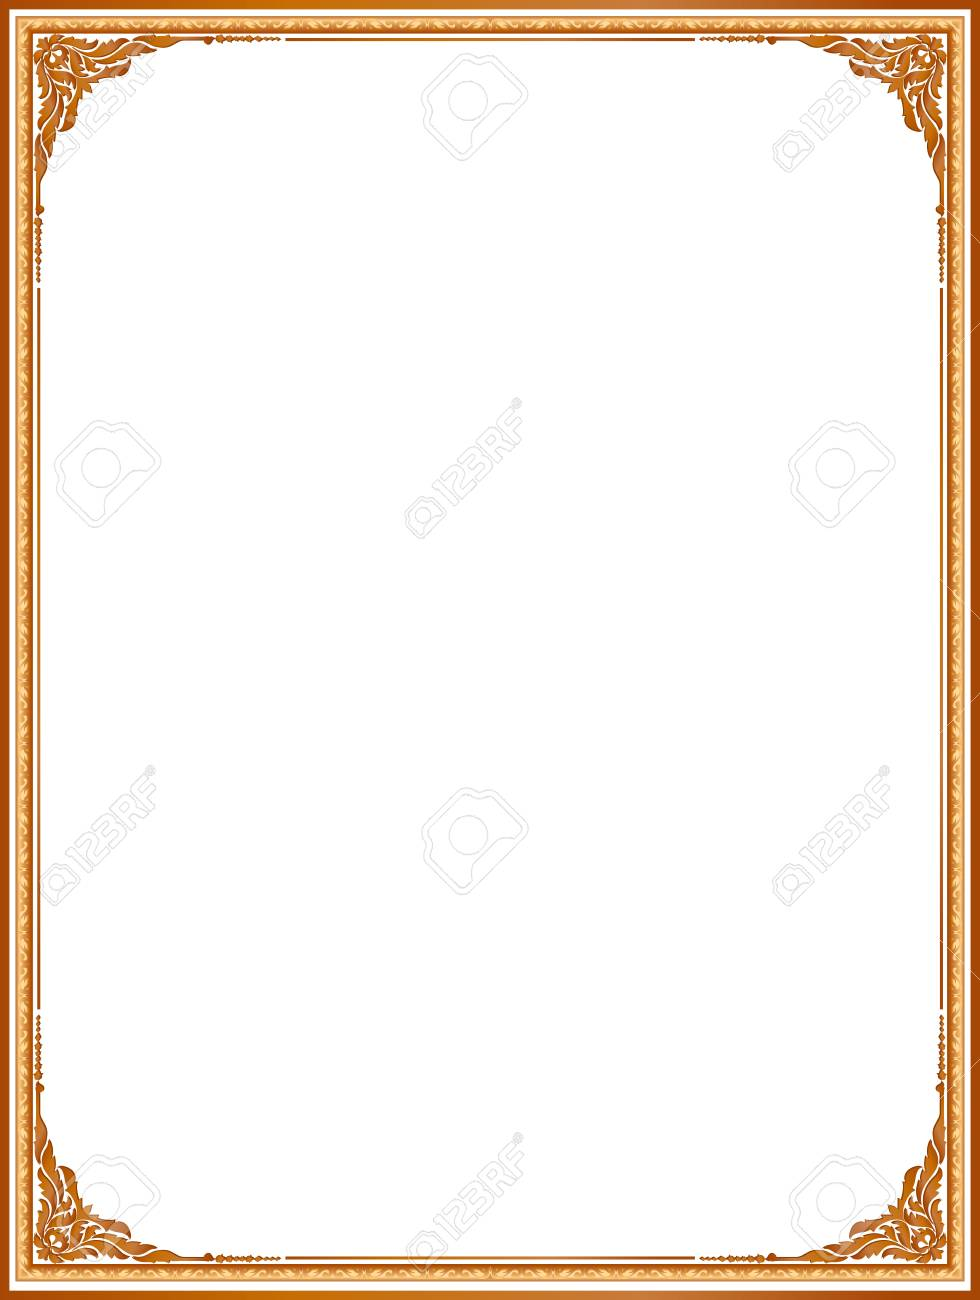 Gold Photo Frame With Corner Line Floral For Picture, Design ...